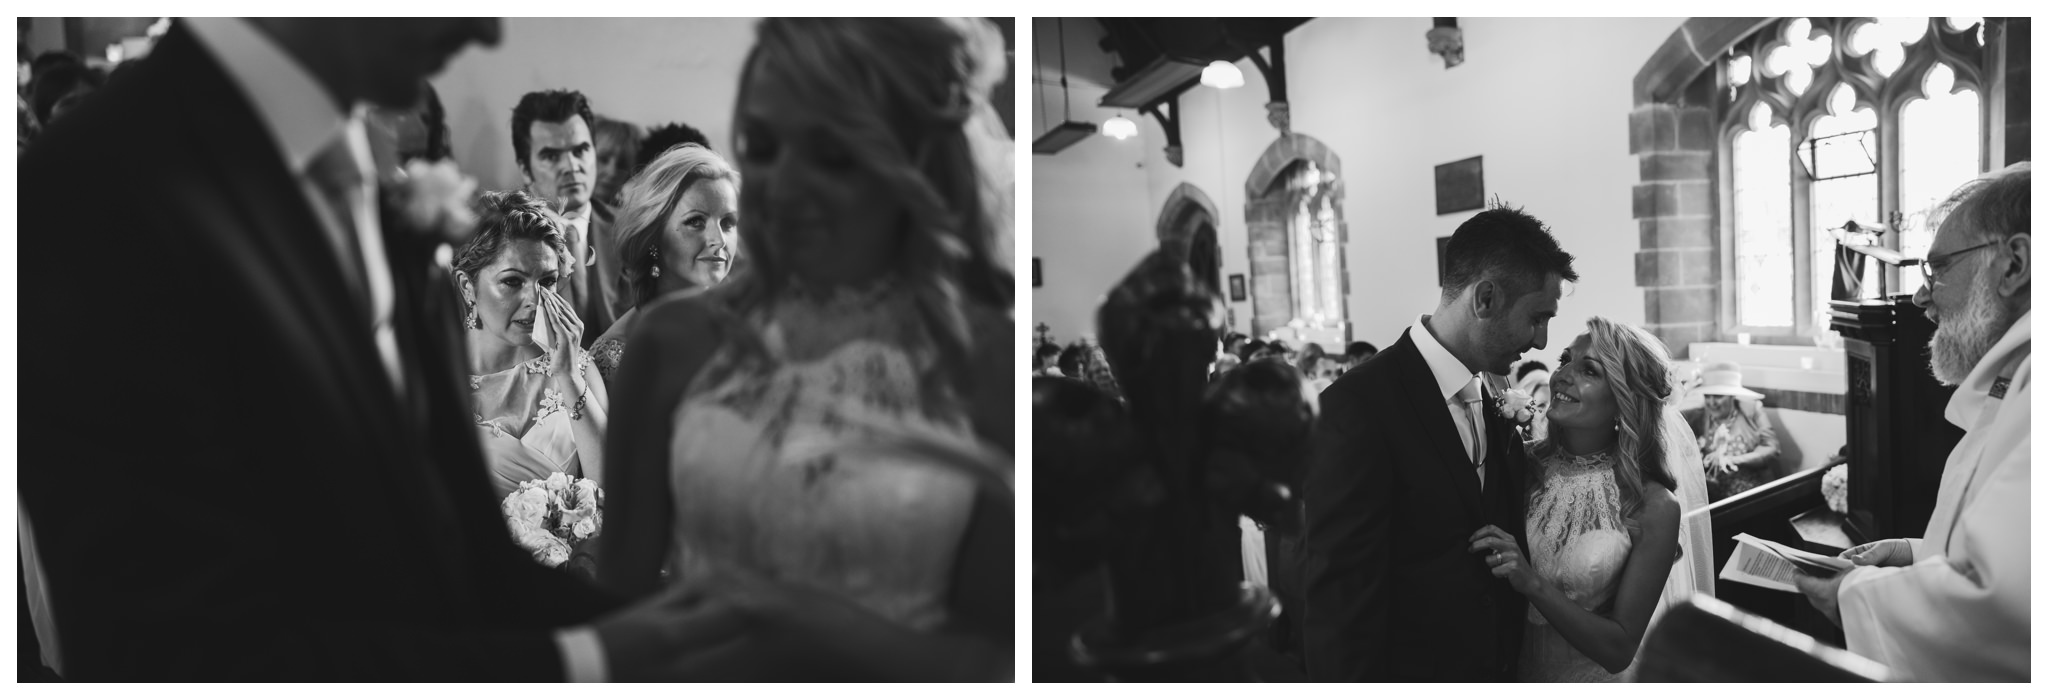 Richard Savage Photography - Wedding - Peterstone Court Brecon - 2016-05-11_0026